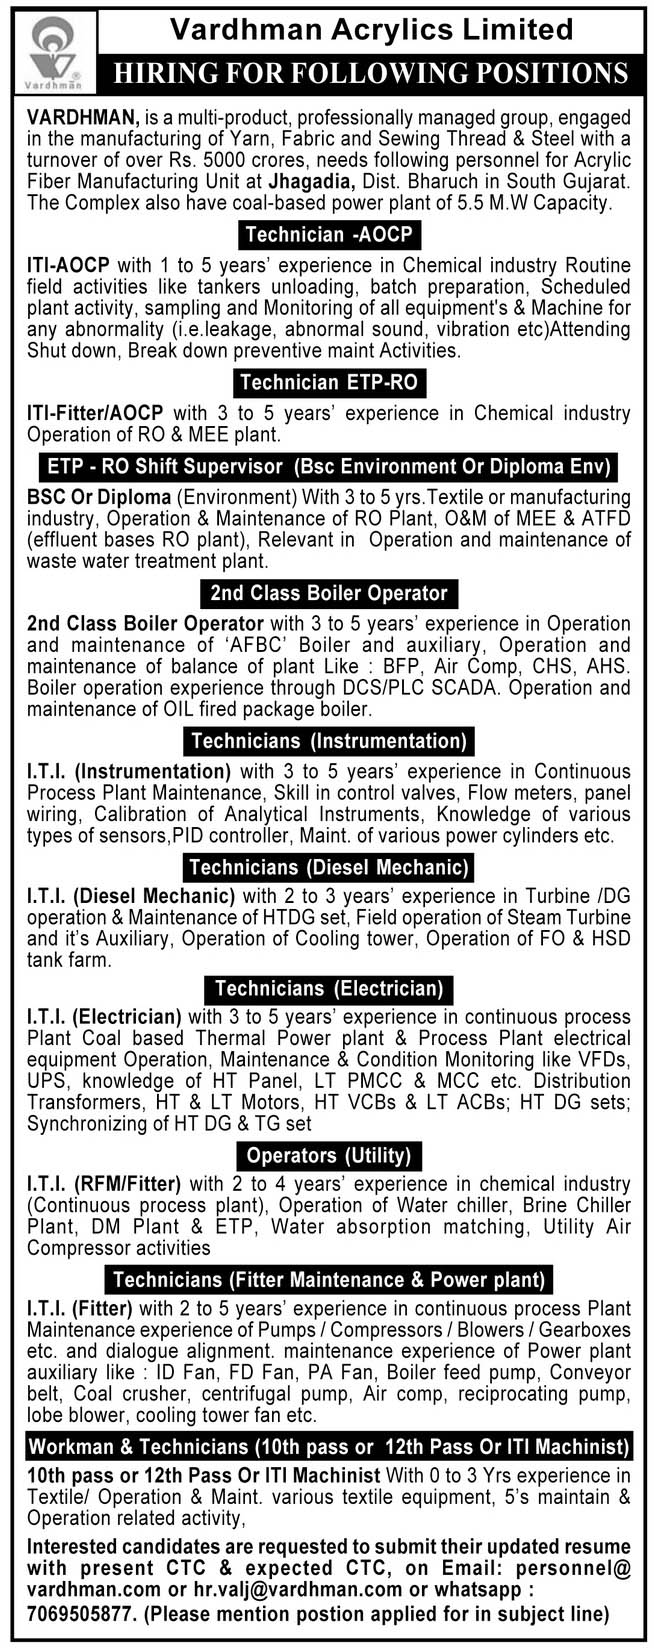 Vardhman Acrylics Limited Jobs 2021 - Workman & Technicians And Other Posts